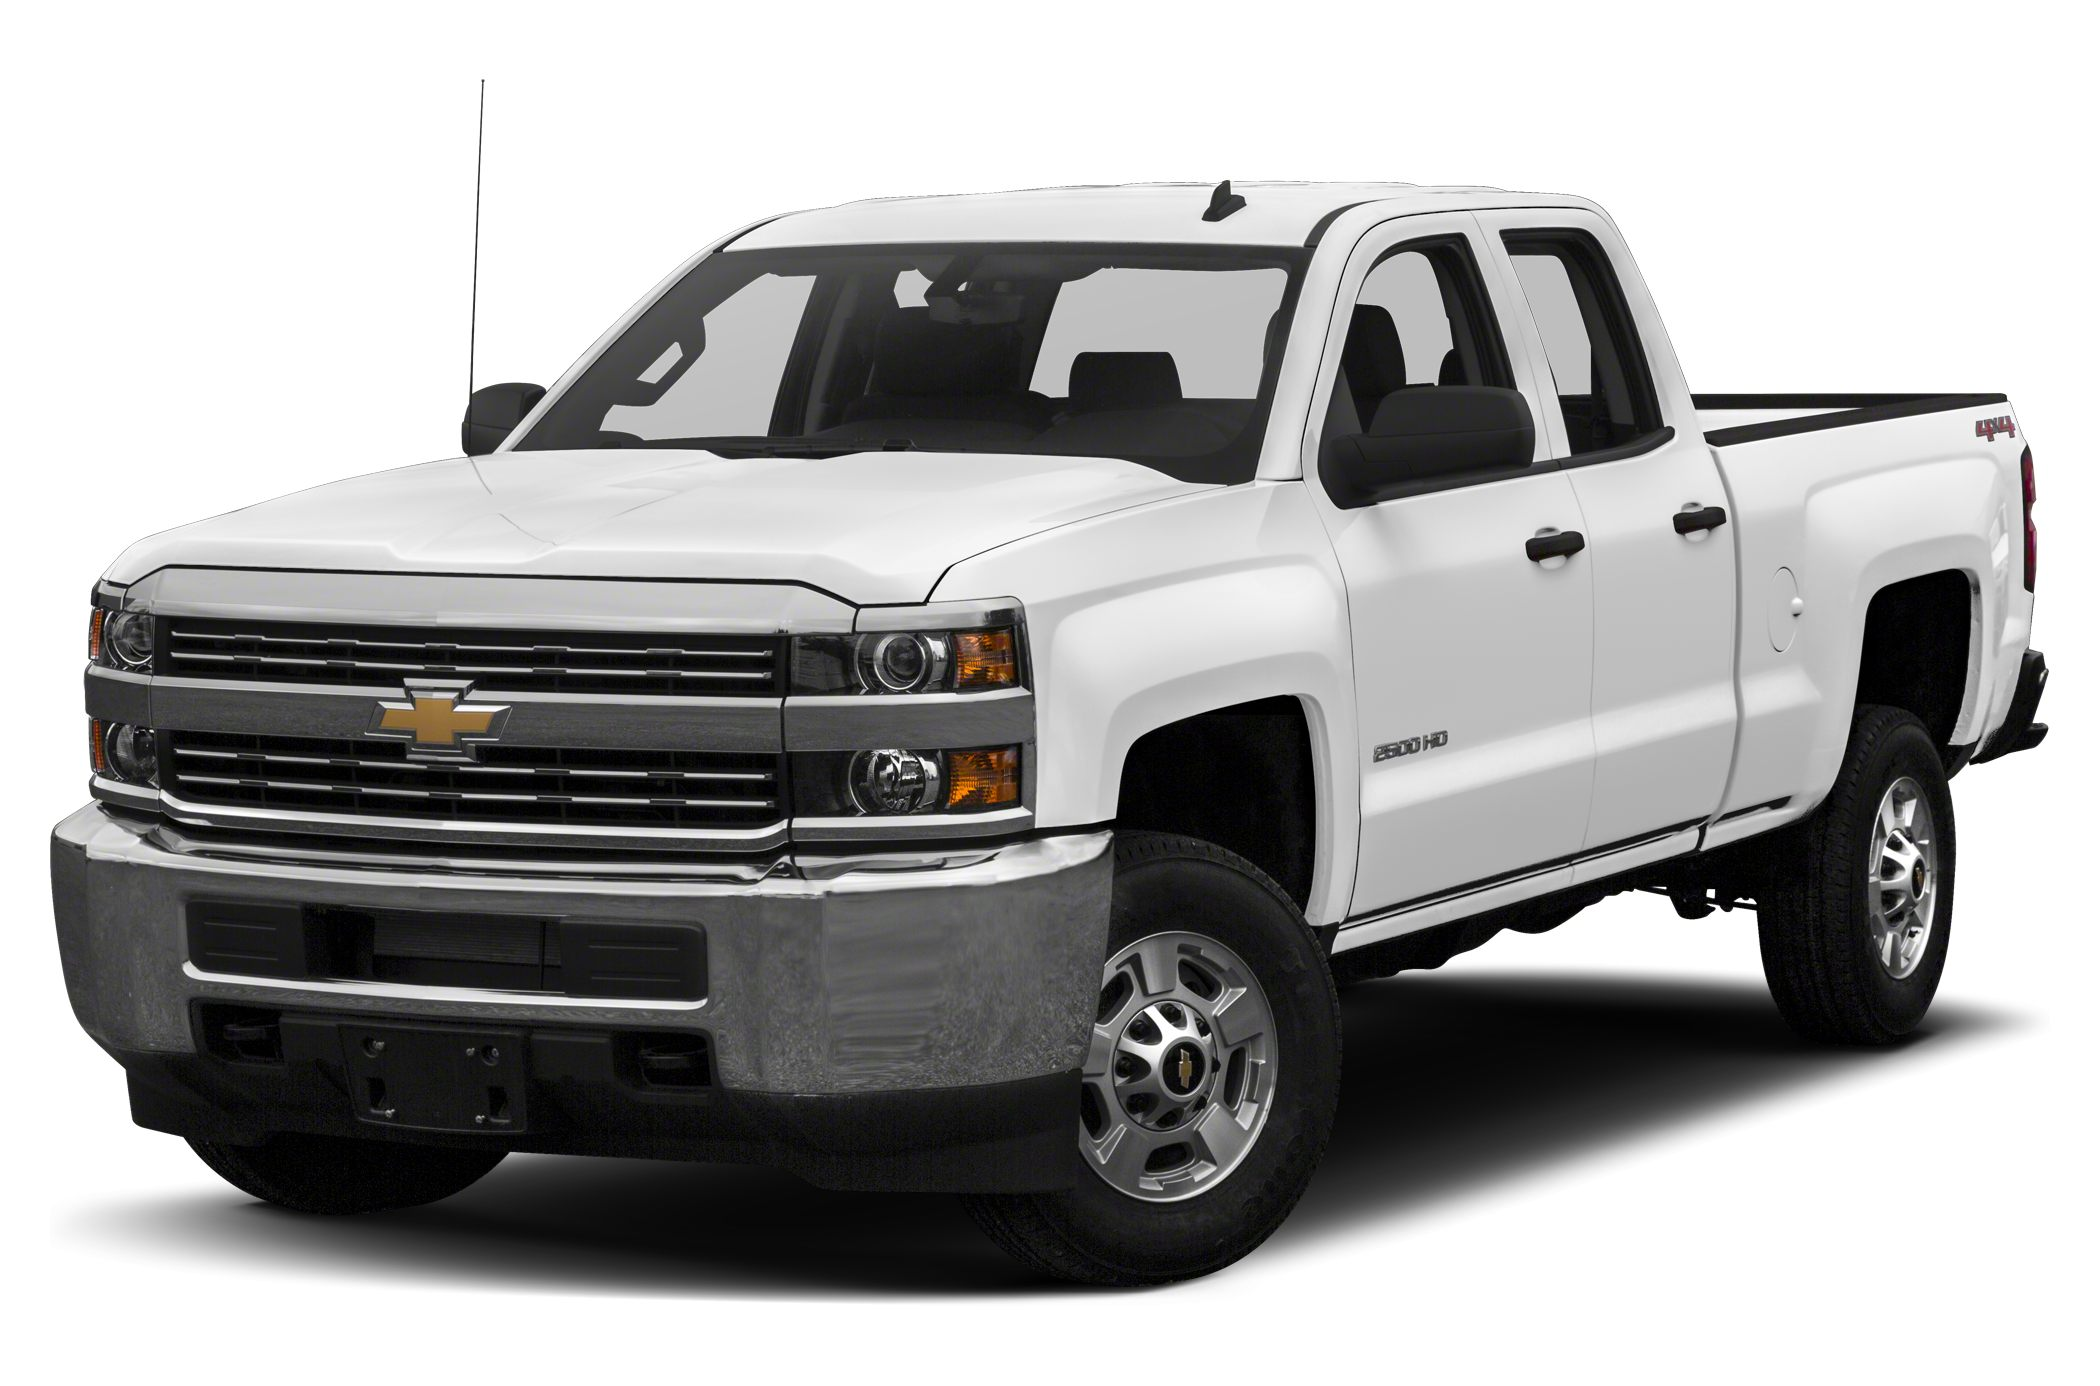 2015 Chevrolet Silverado 2500 WT Regular Cab Pickup for sale in Clifton Park for $39,315 with 4 miles